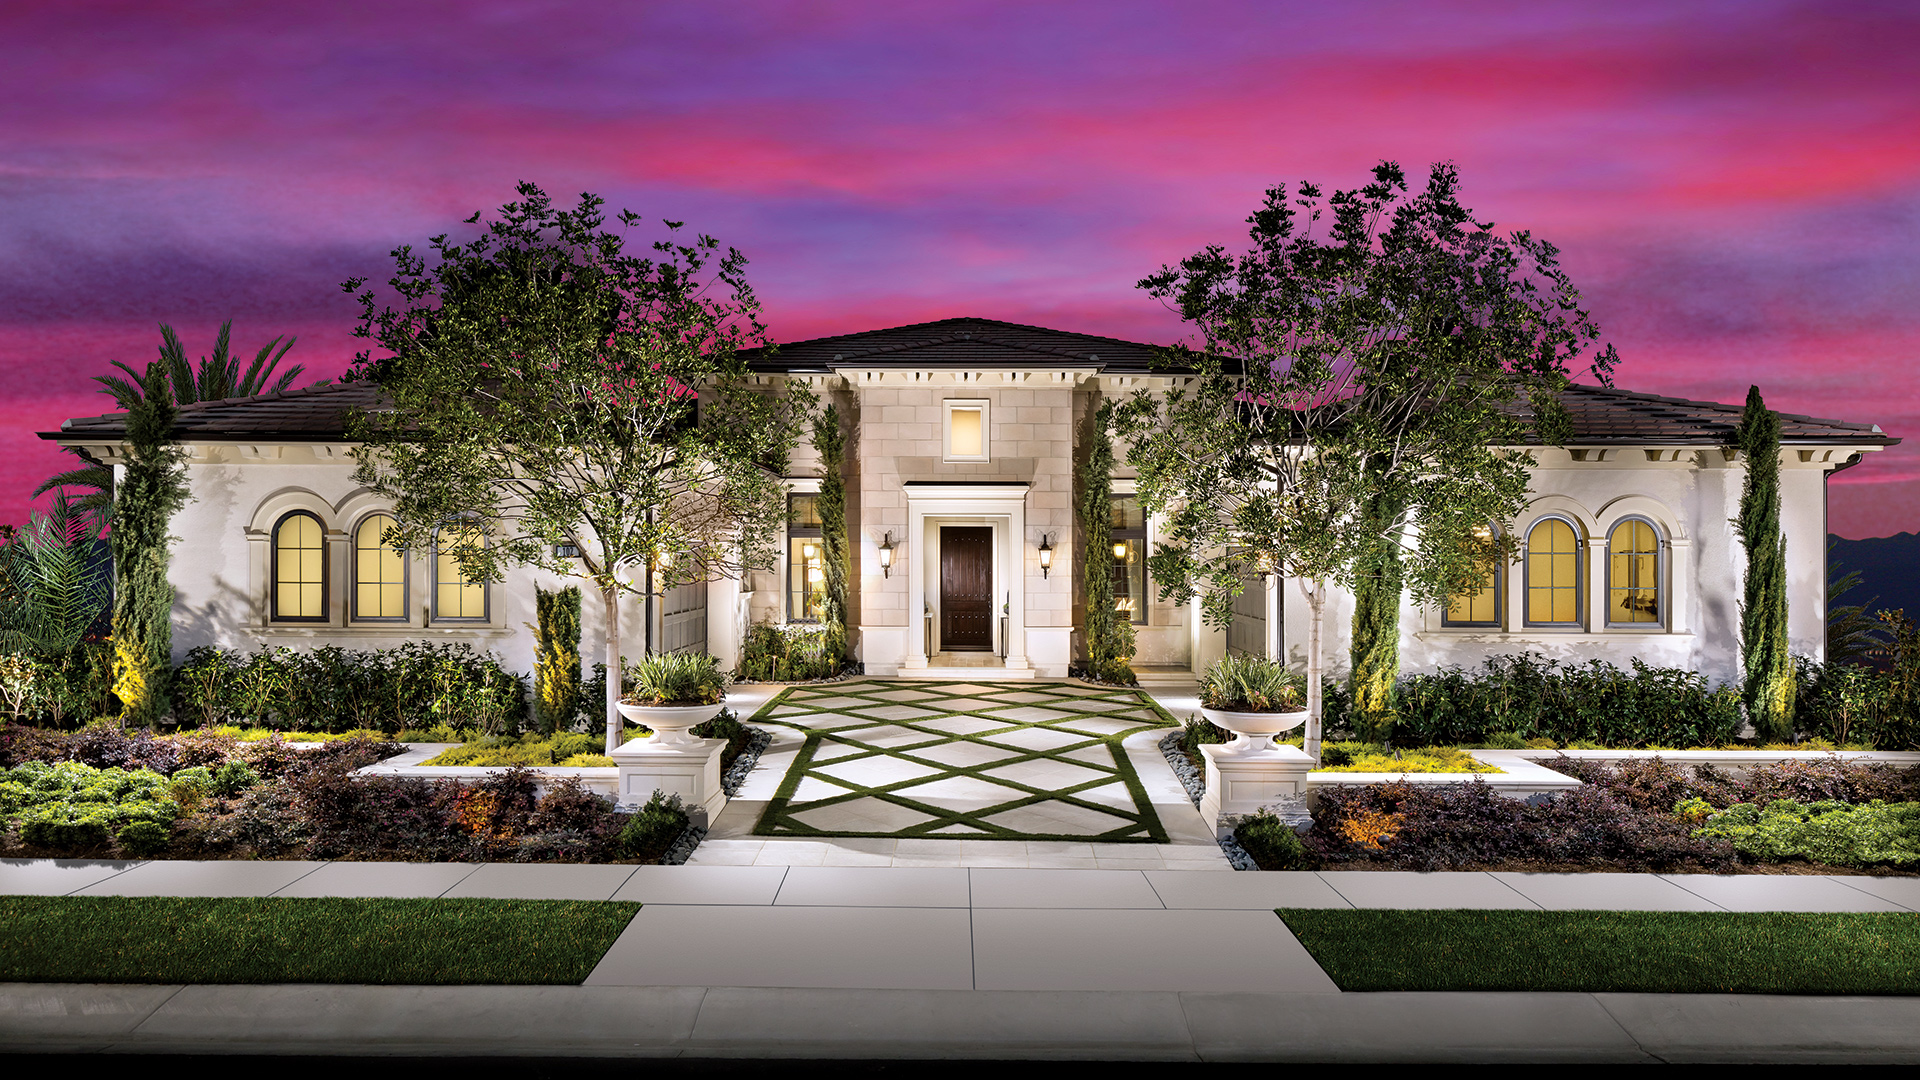 Oakcrest offers a variety of stunning architectural features and generous open floor plans, including three single-story and two two-story home designs.